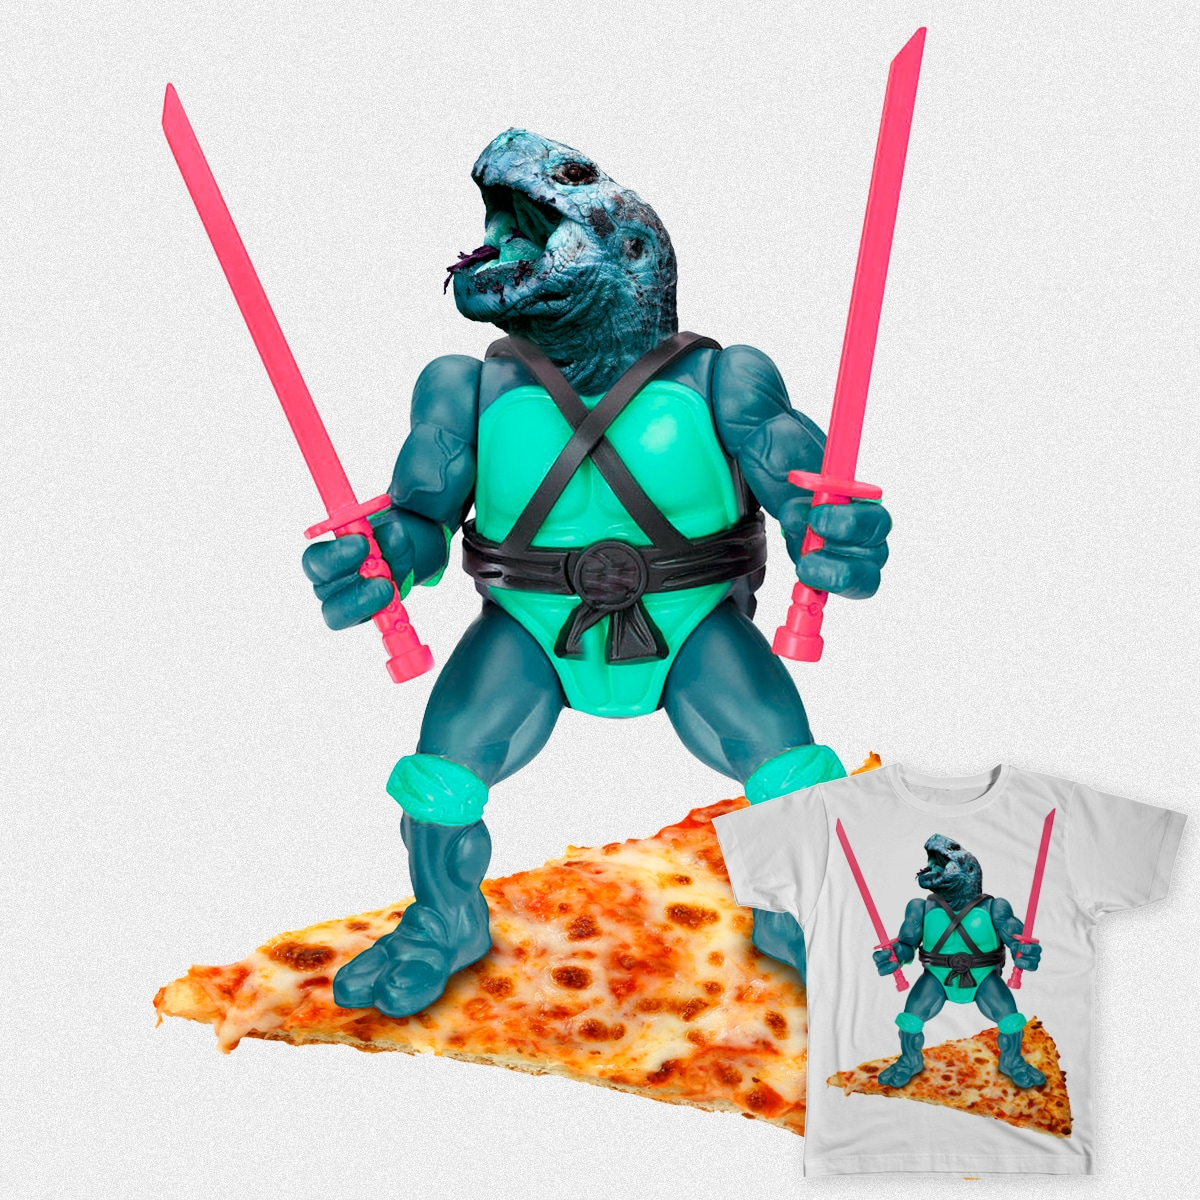 TMNT - PIZZA TIME by MRCLV and Mariana on Threadless